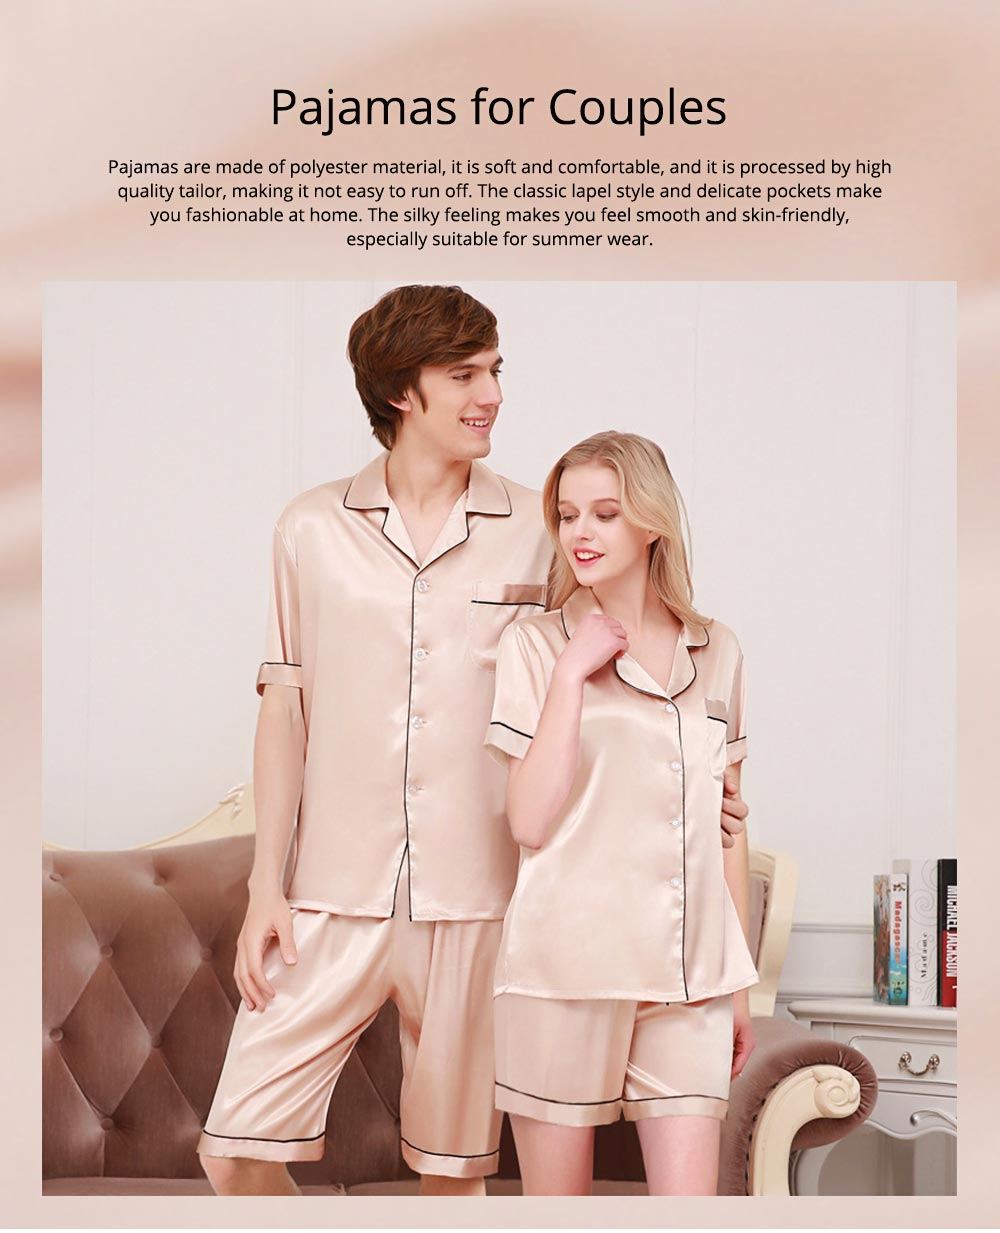 Couple Nightclothes Suit, Polyester Material Silky Feeling Soft Pajamas, Skin-friendly Nightgown Short Sleeve Shirts Pants, Breathable Nightdress for Couples Summer 0